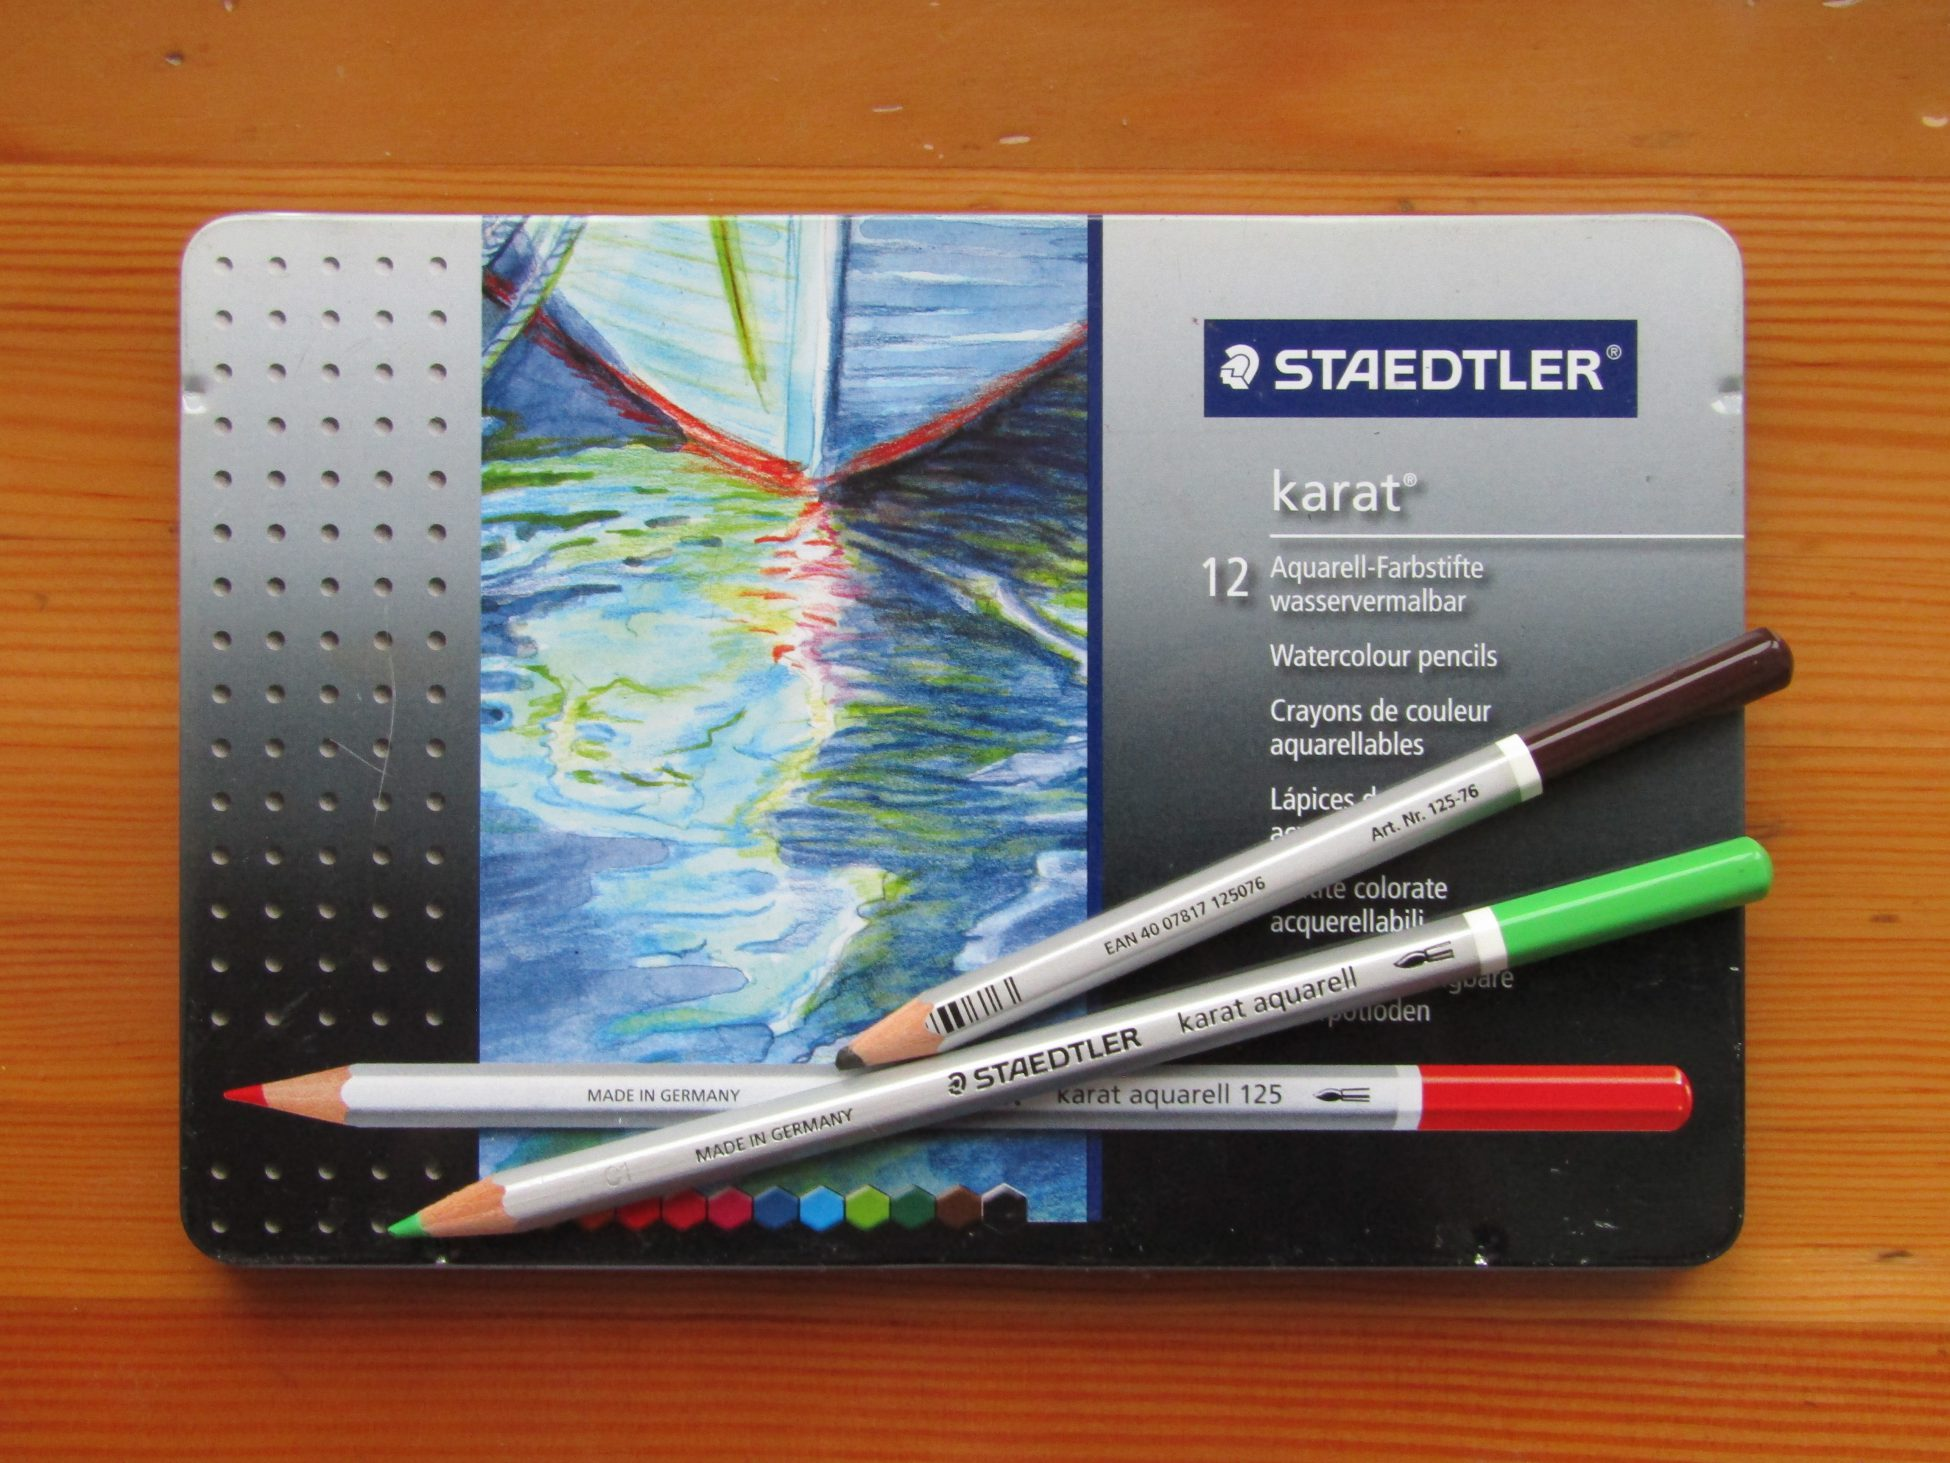 Professional Watercolor Pencils Staedtler Karat: the Main Features